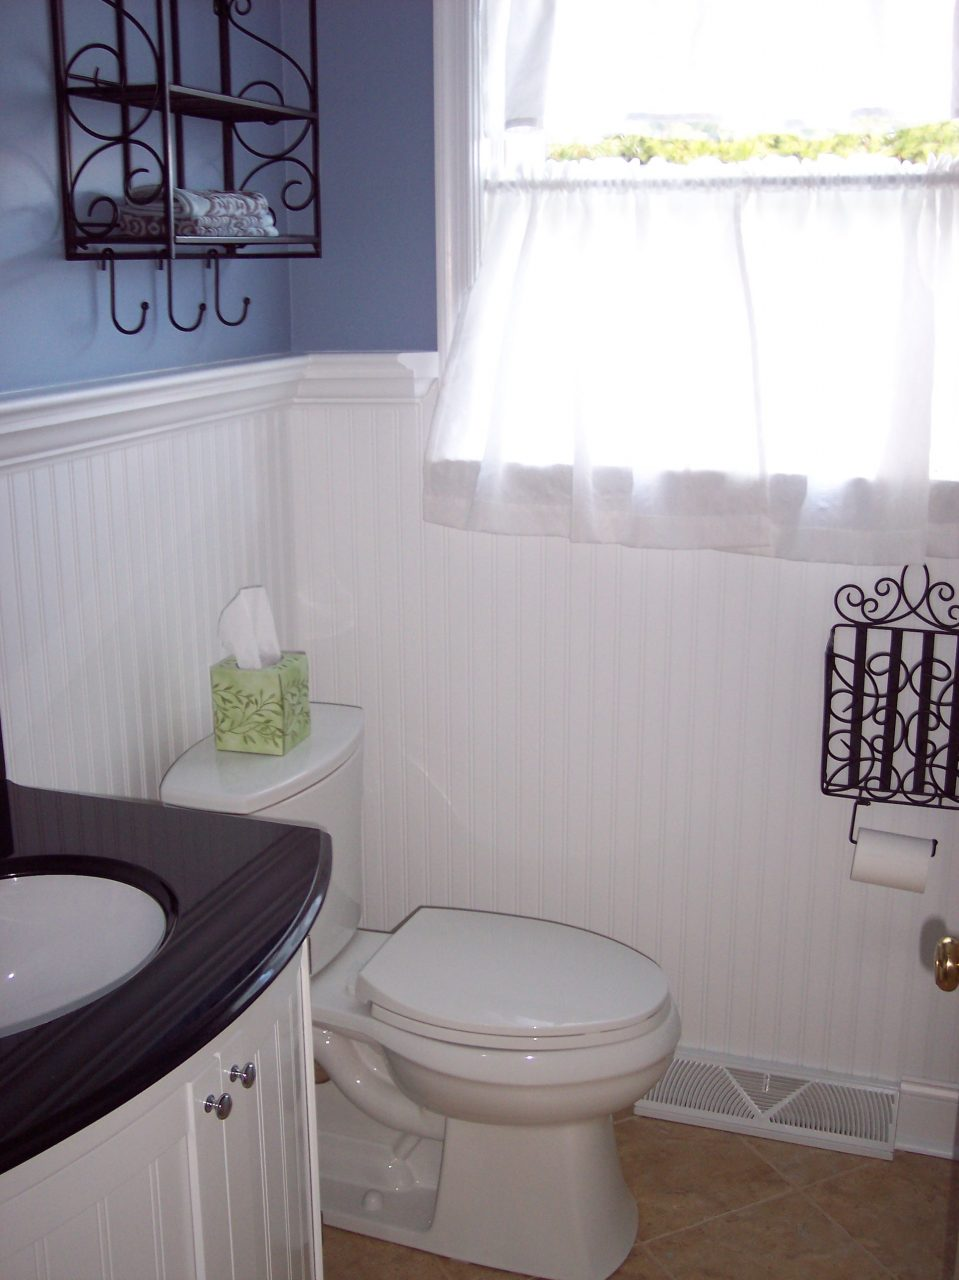 How Much Will My Remodel Cost Lancaster Pa Remodeling